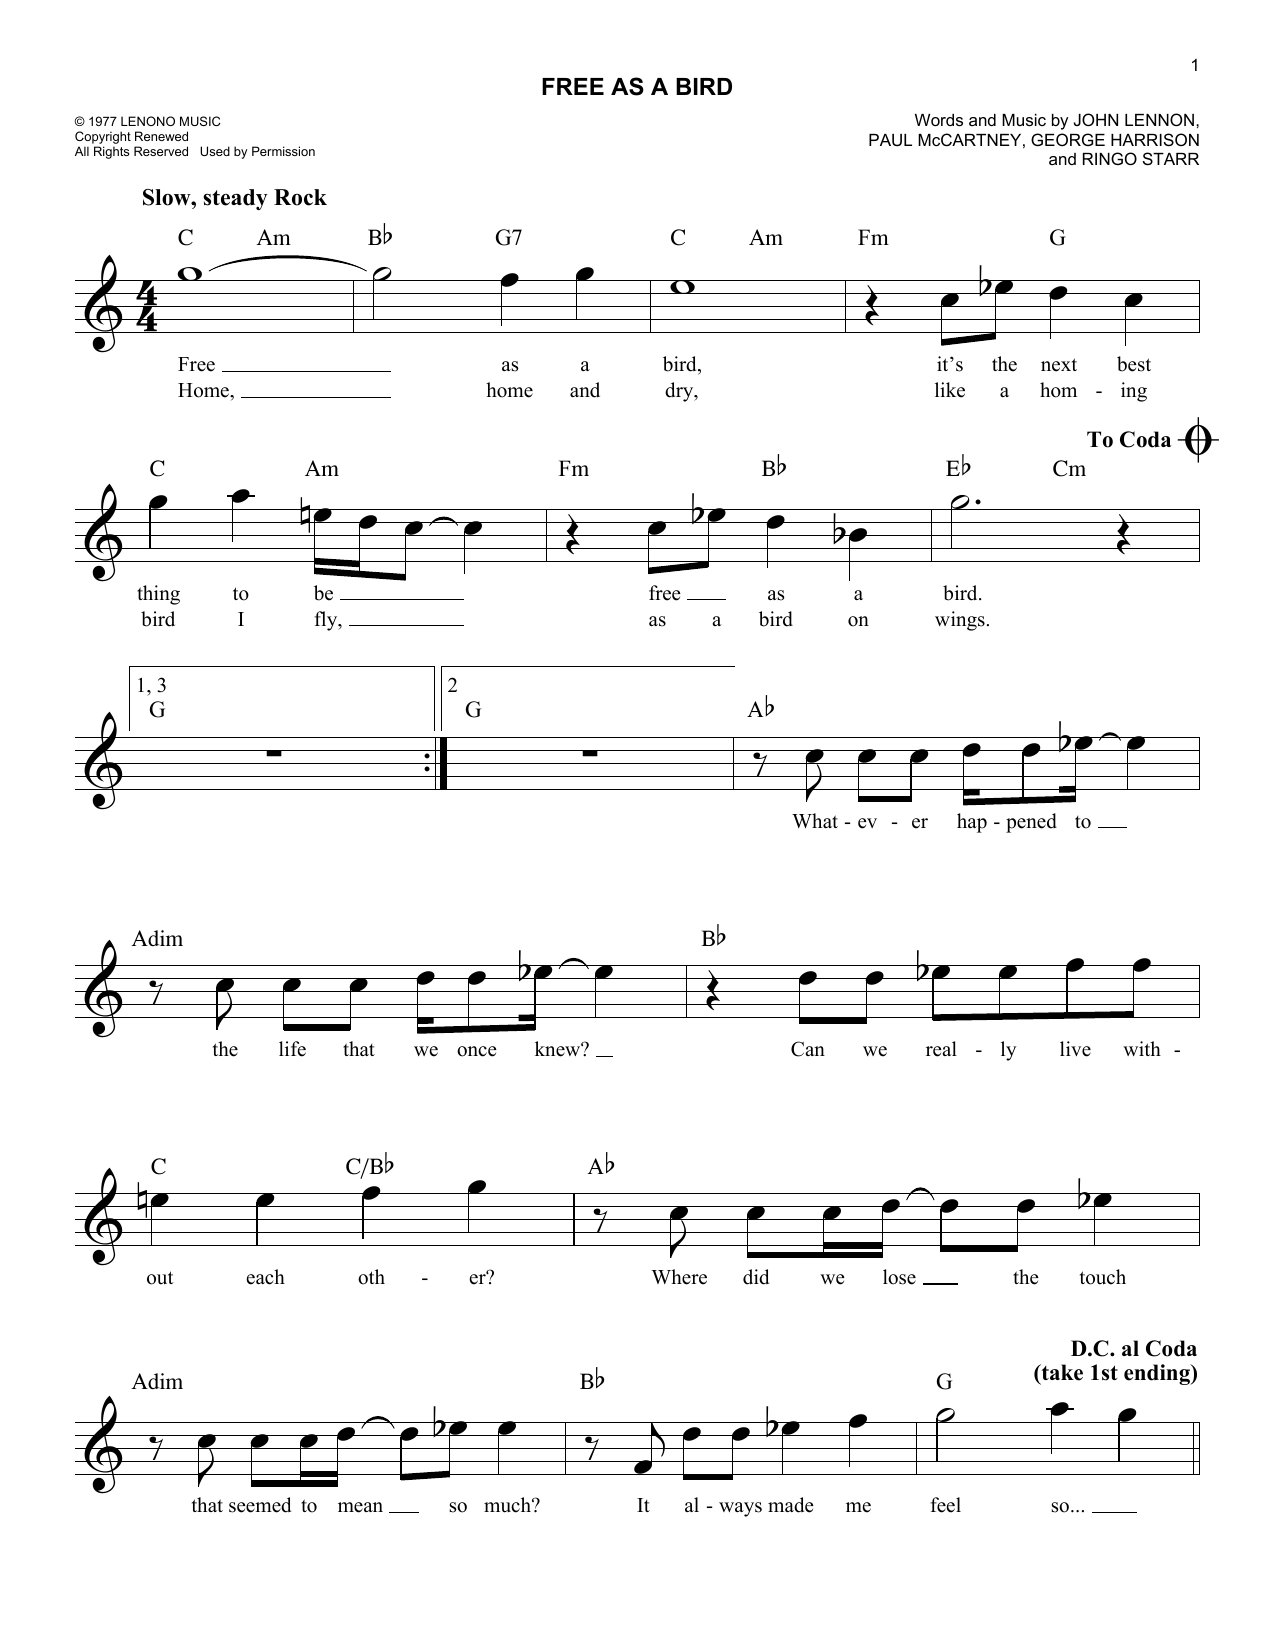 Free as a bird chords by the beatles melody line lyrics chords free as a bird sheet music hexwebz Images